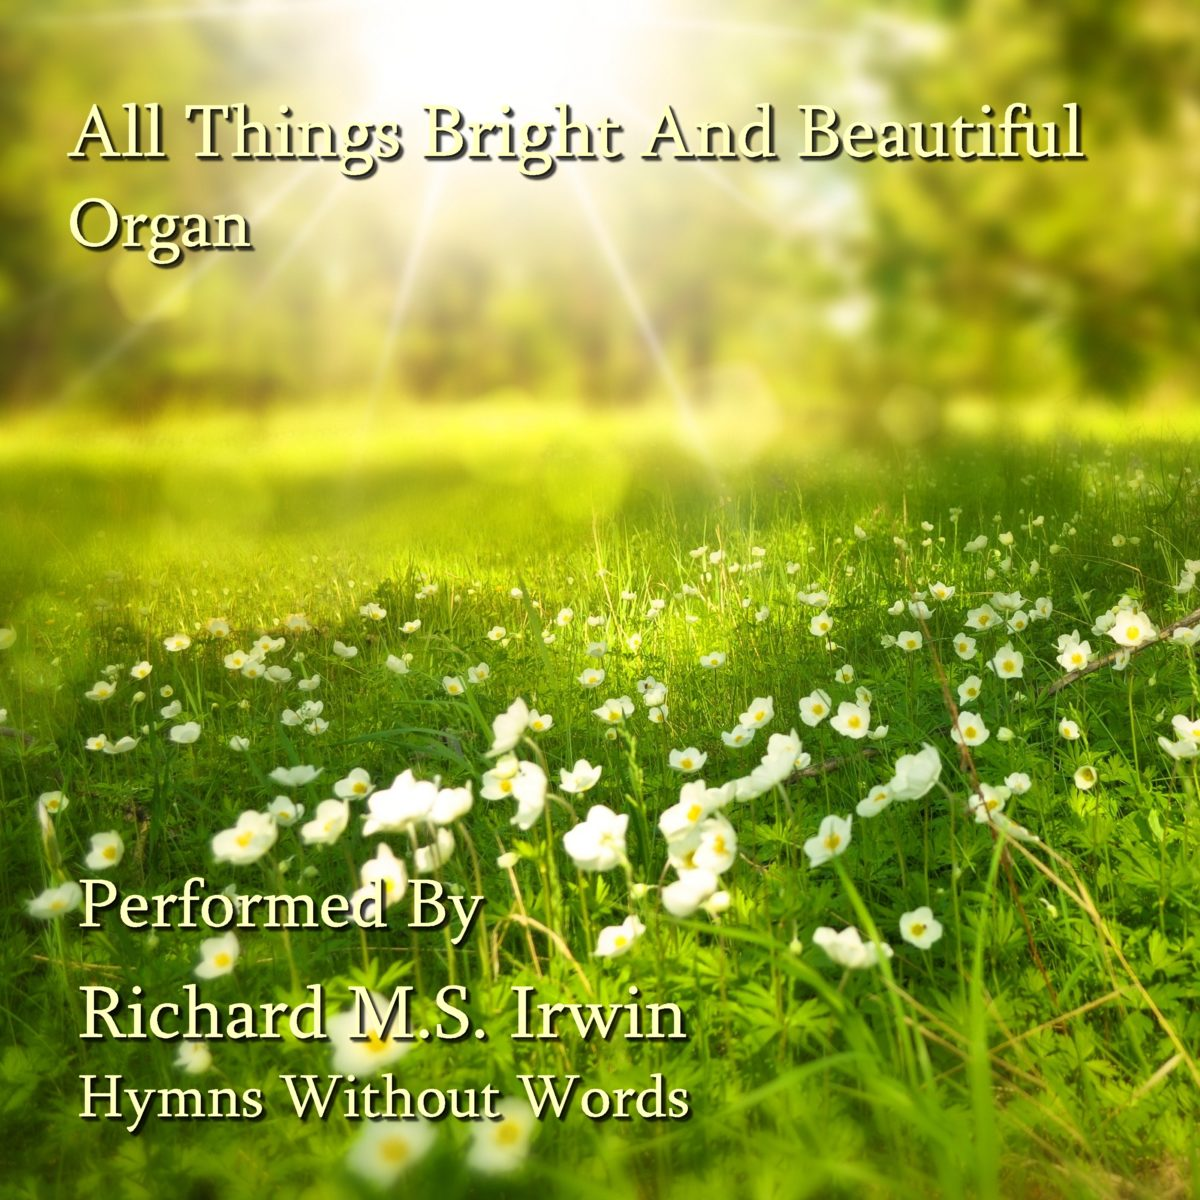 All Things Bright And Beautiful (All Things Bright, Organ,5 Verses)